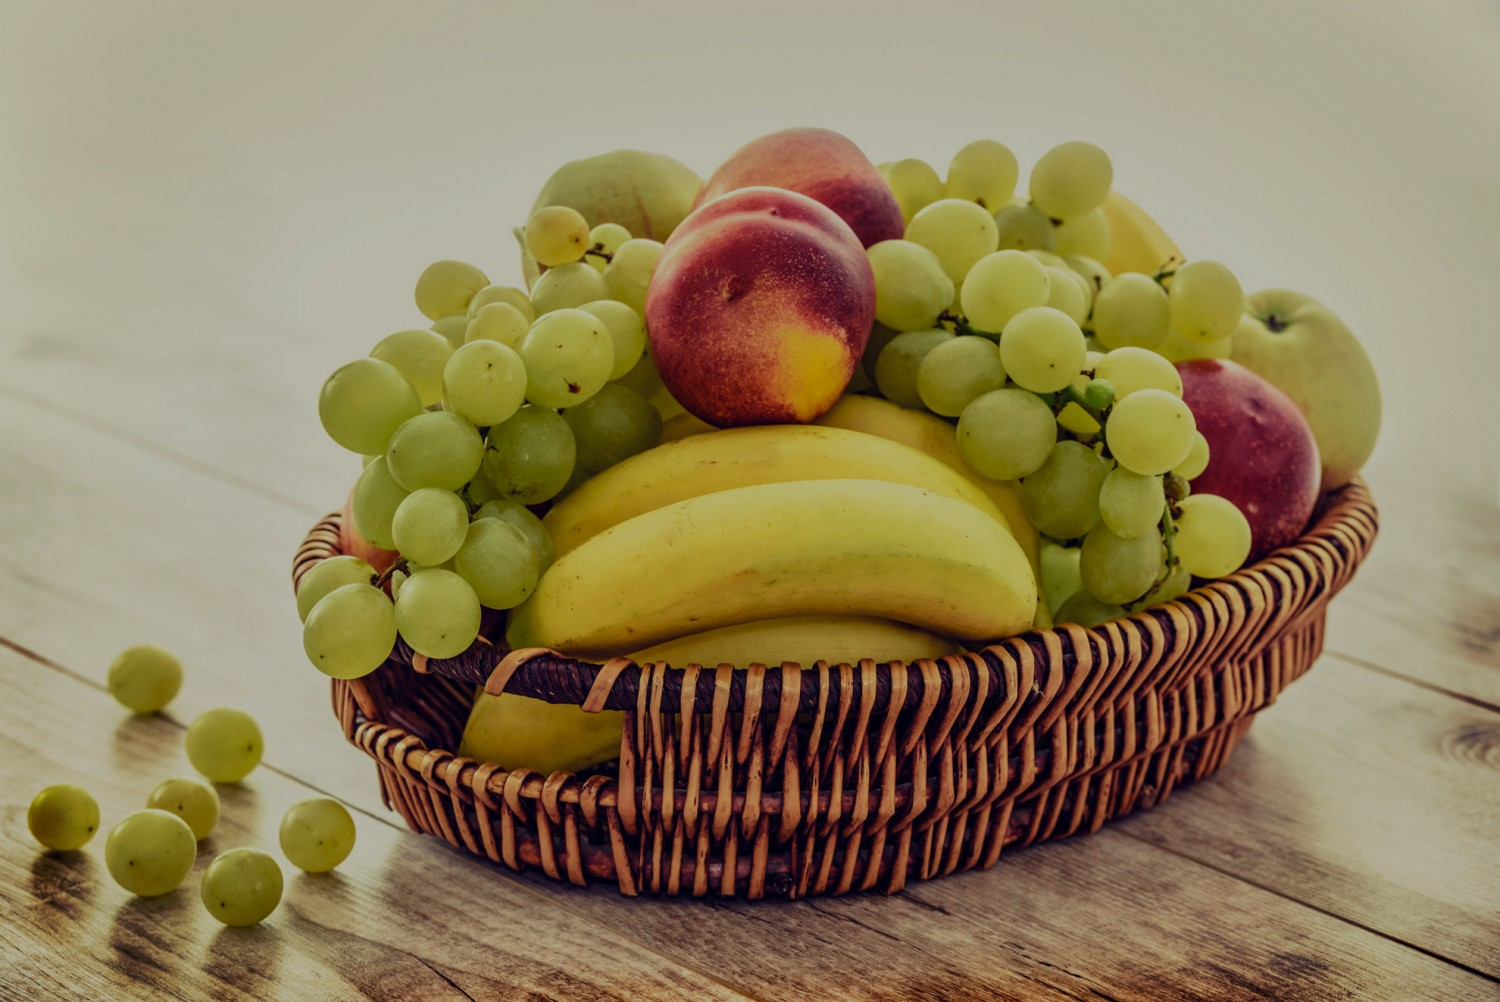 apples bananas basket 235294